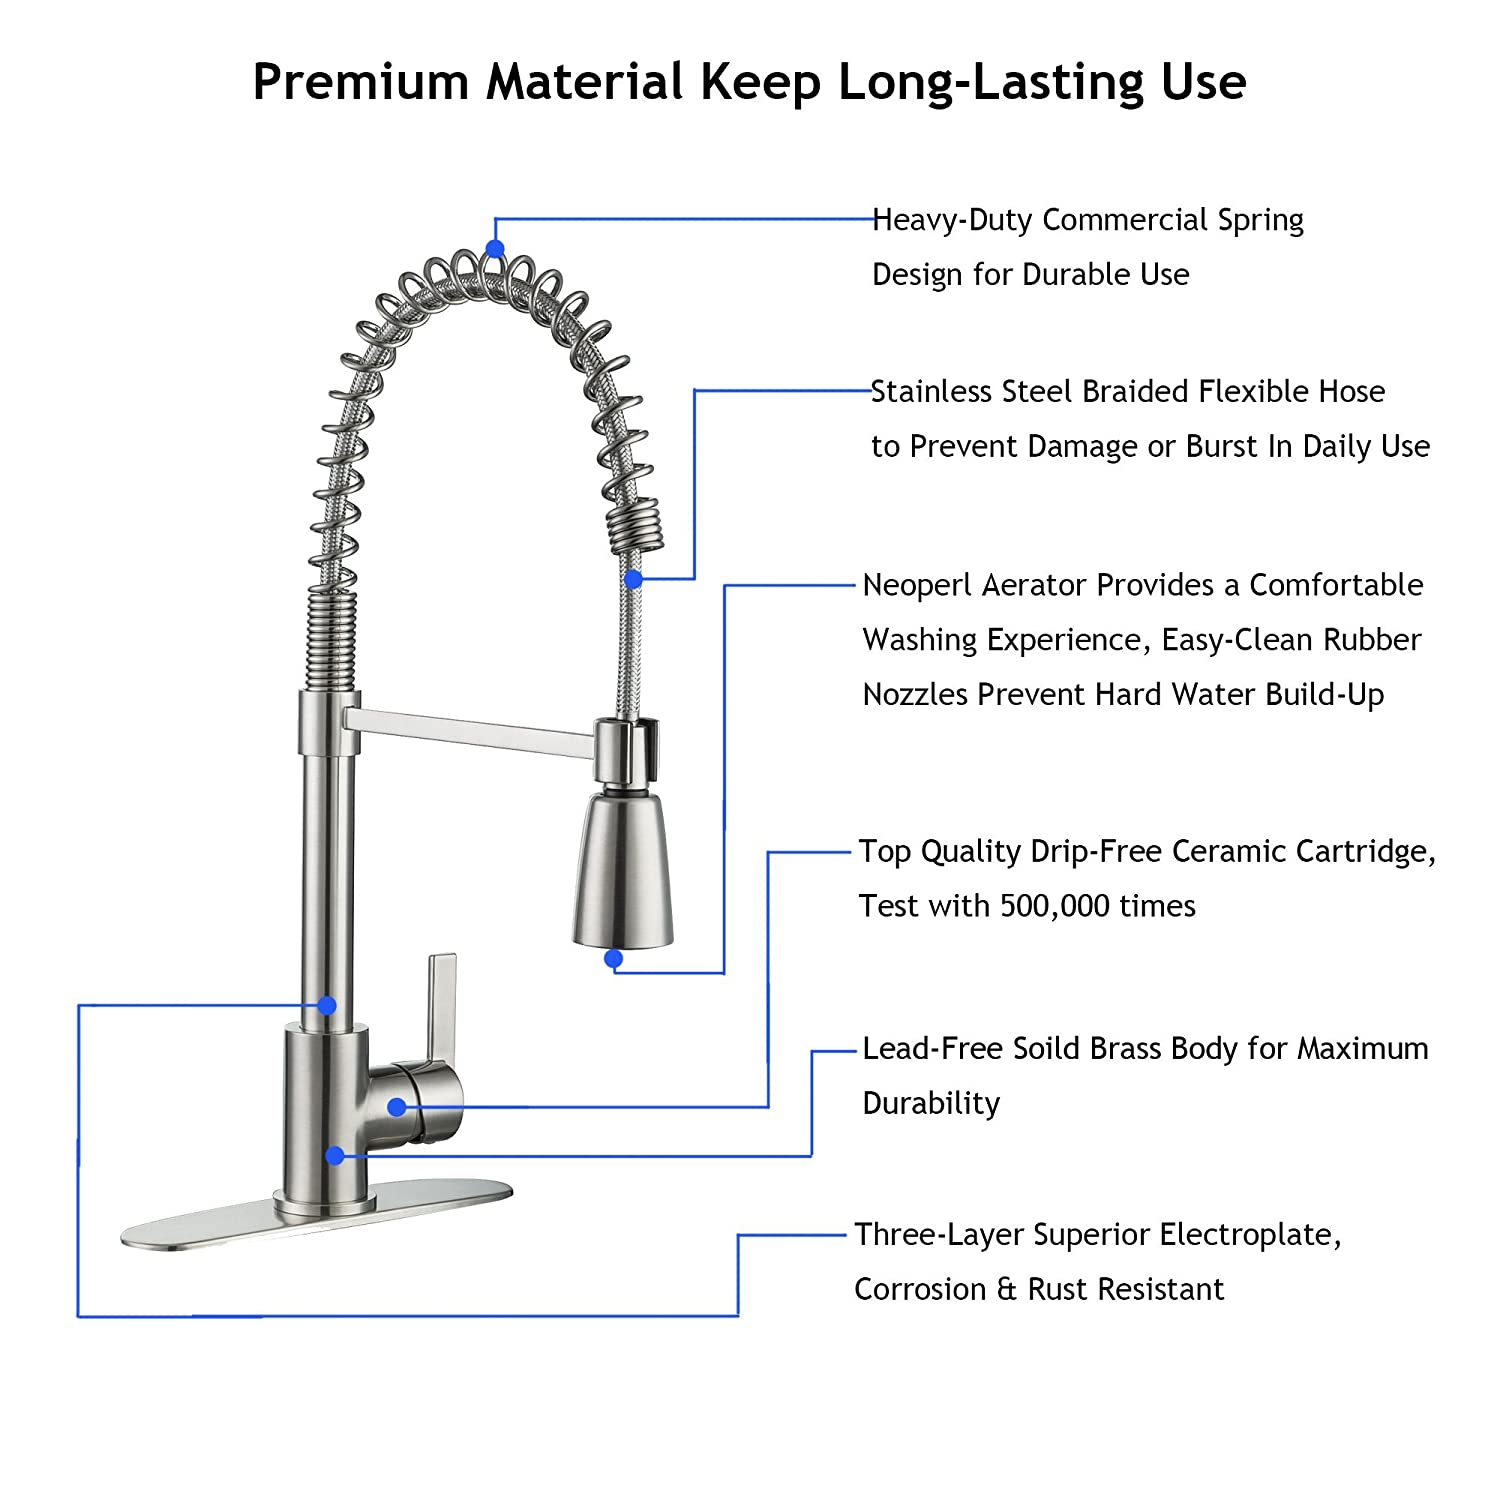 Oil Rubbbed Bronze cUPC//NSF//Low-Lead Compliant ENZO RODI Modern Commercial Style Single-Handle Kitchen Sink Faucets with Pull-Down Sprayer ERF7343377HA-10 for 1 or 3 Holes installation Escutcheon Included